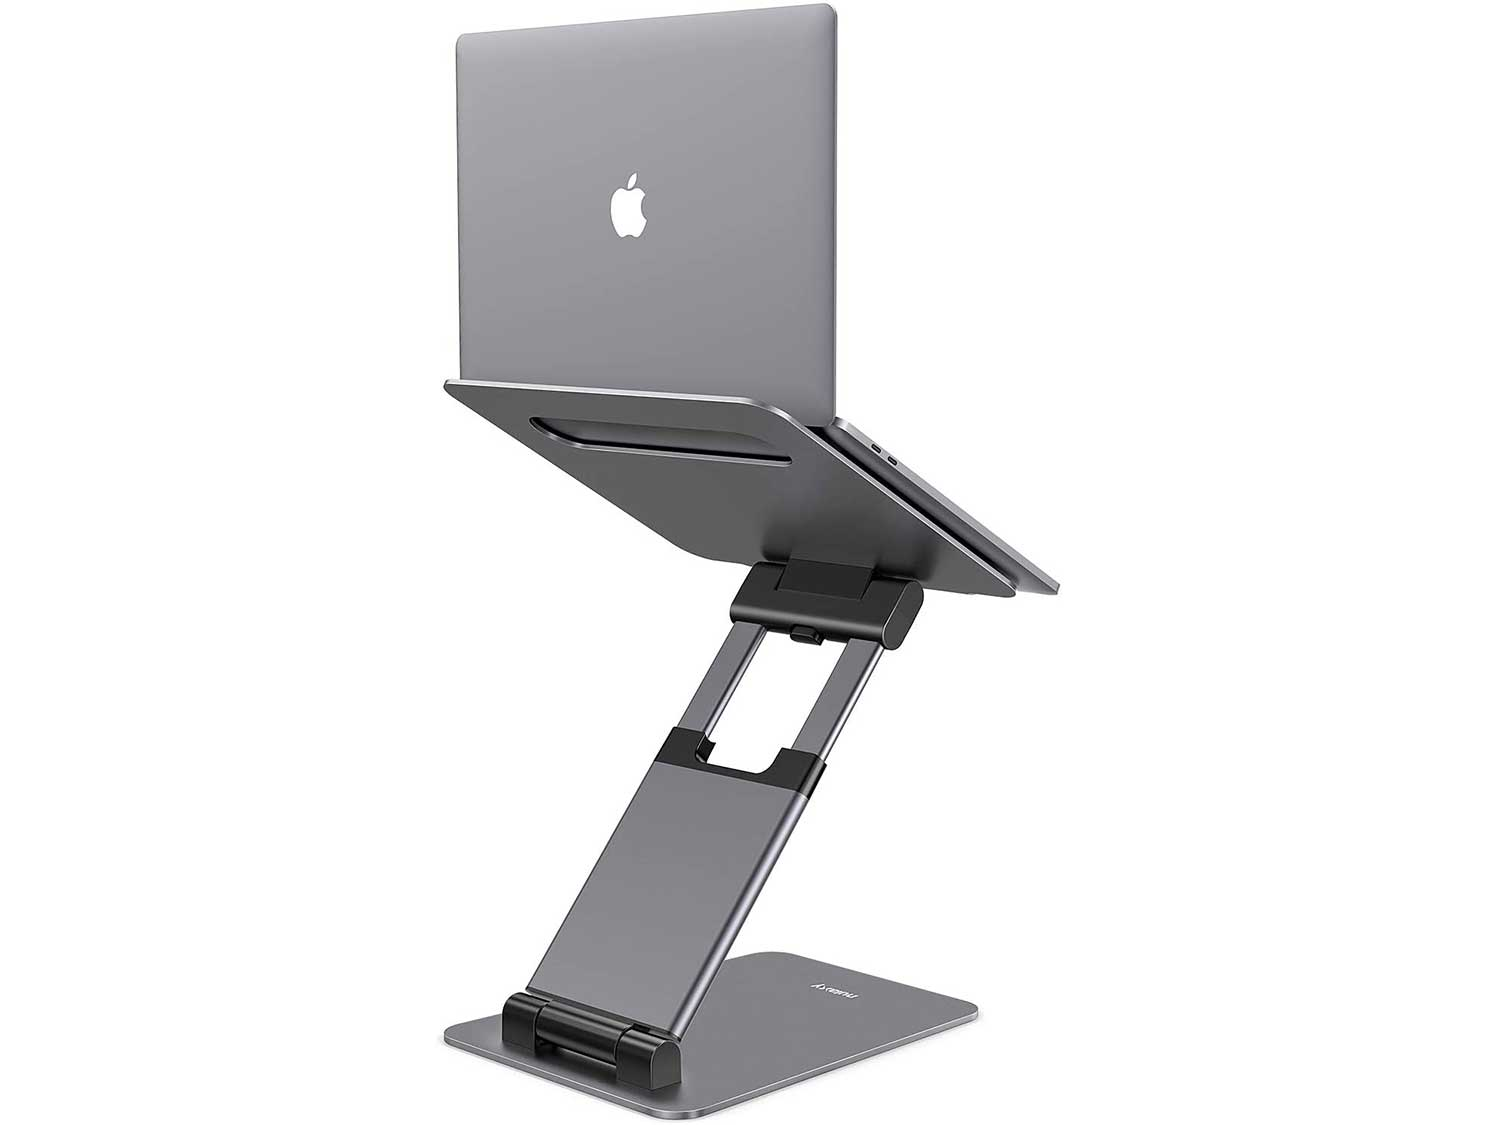 Nulaxy Laptop Stand, Ergonomic Sit to Stand Laptop Holder Convertor, Adjustable Height from 2.1